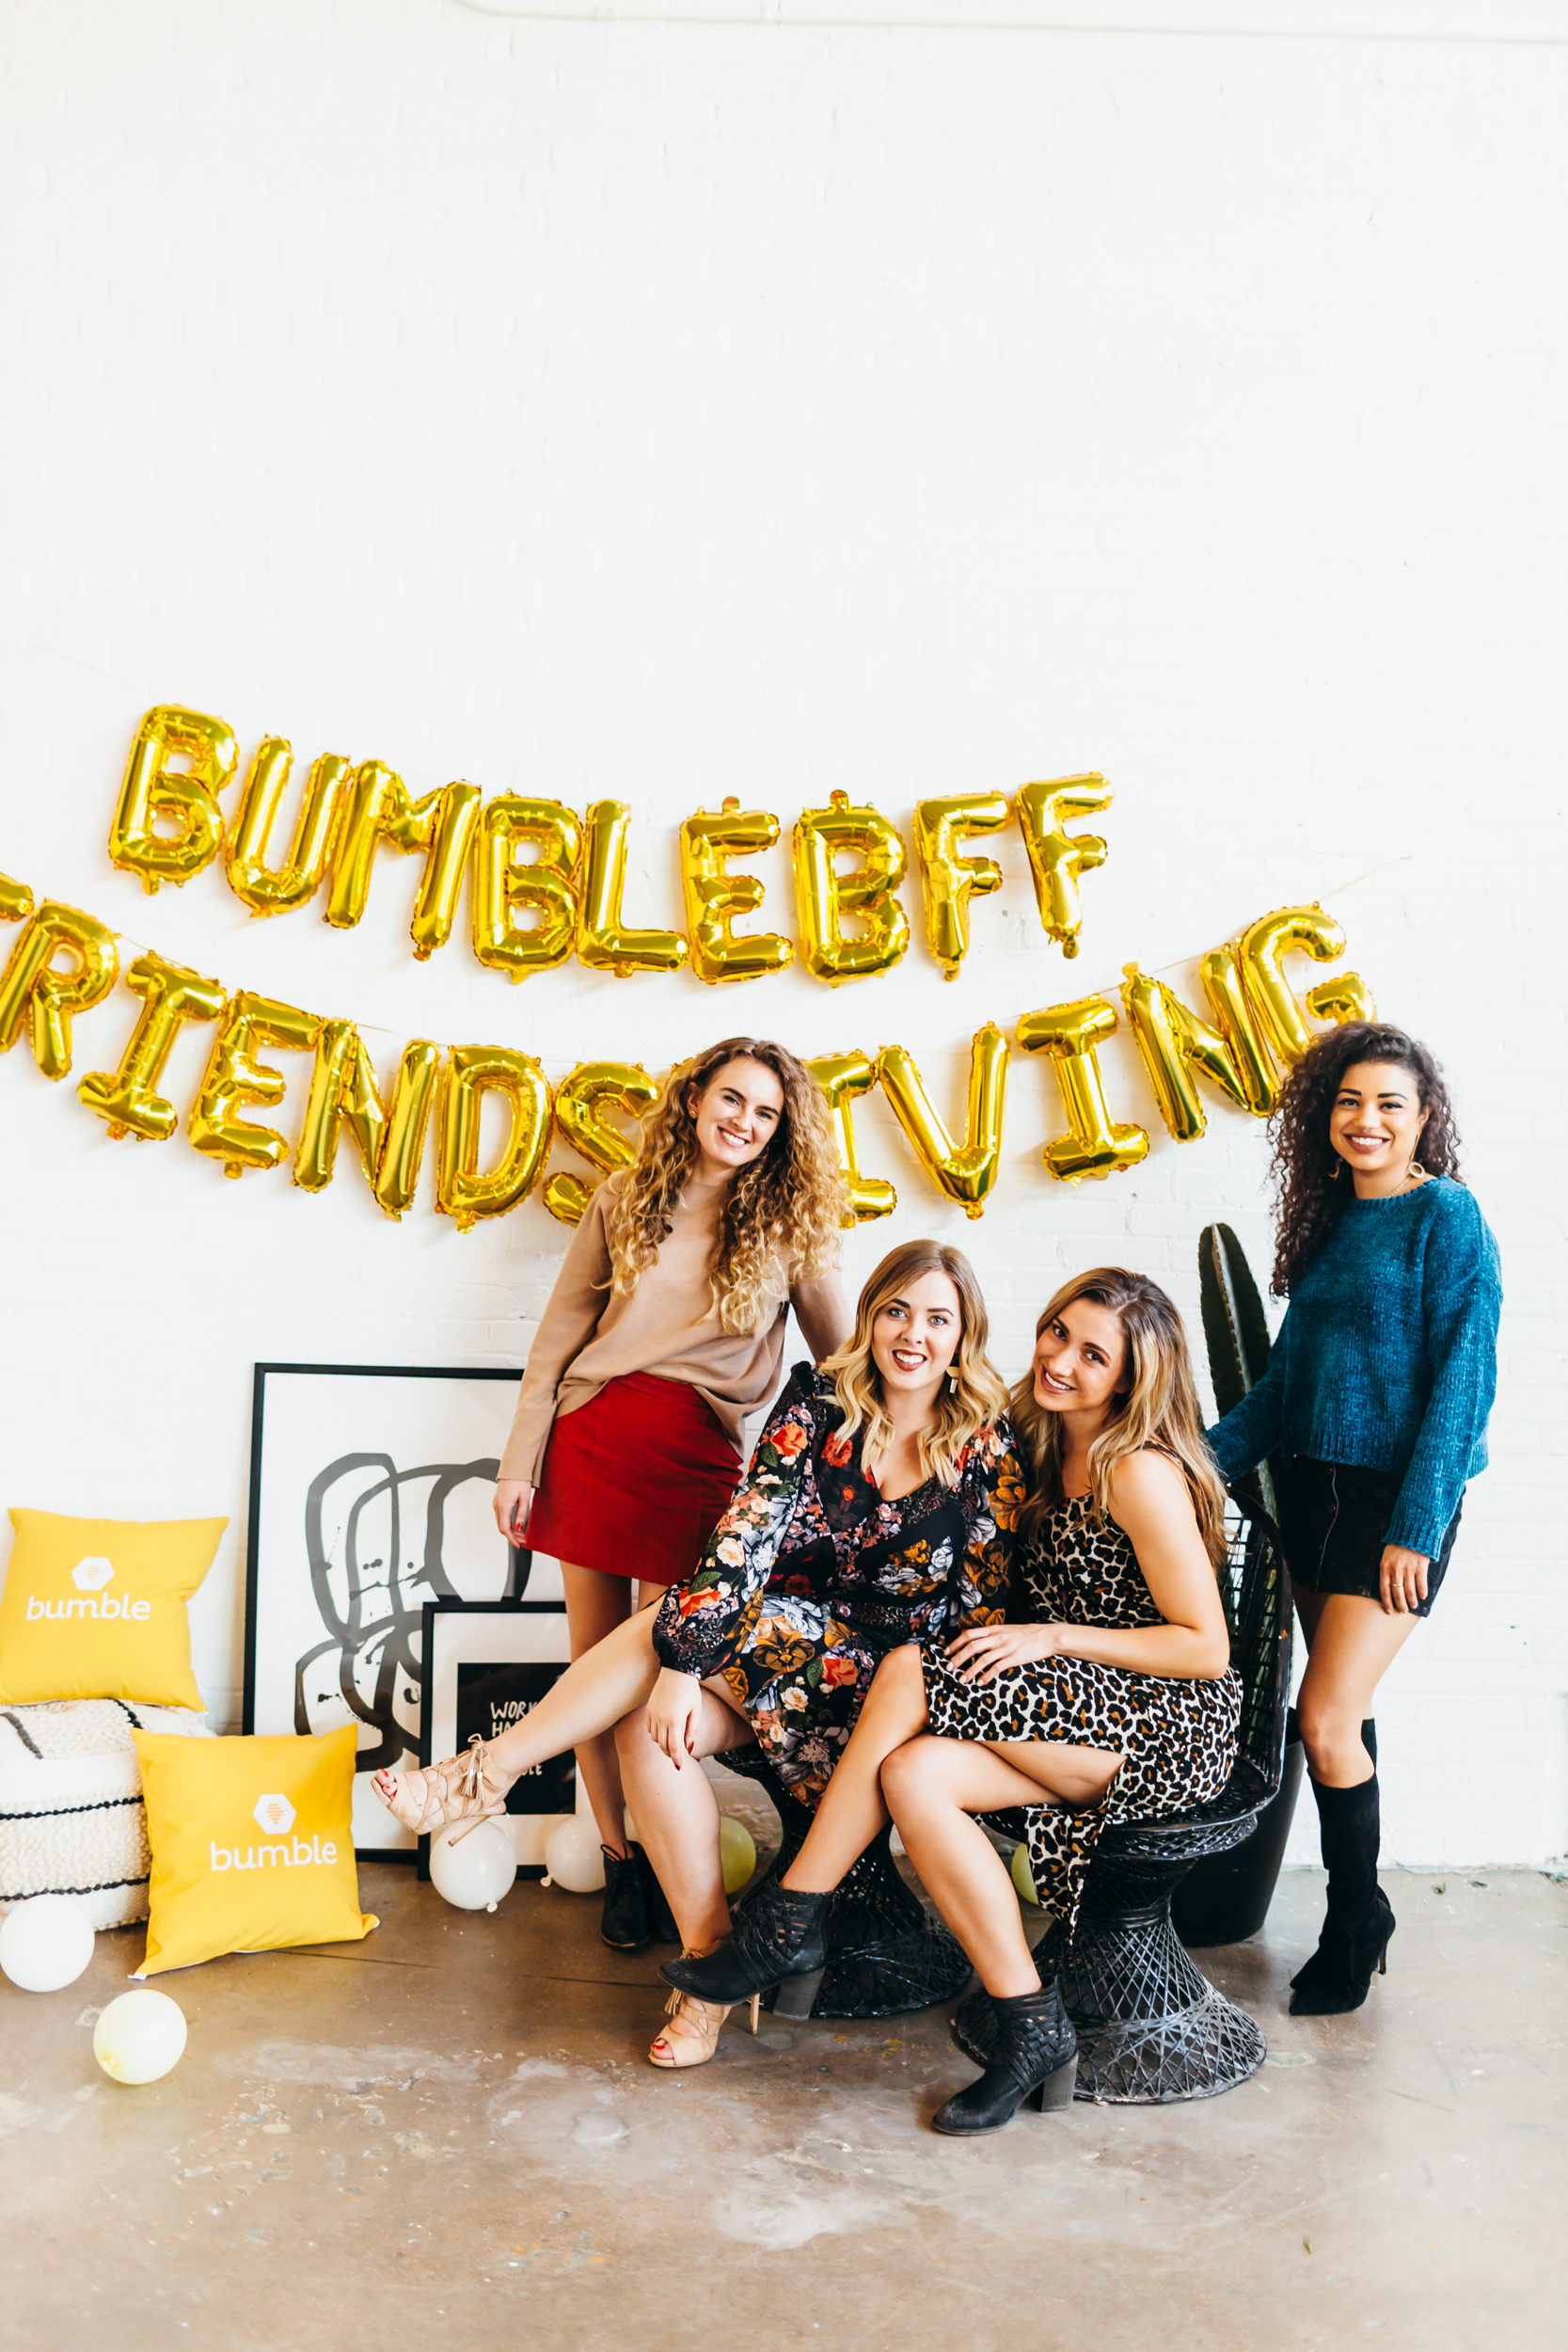 bumble-bff-friendsgiving-@sheinthemaking-3181.jpg